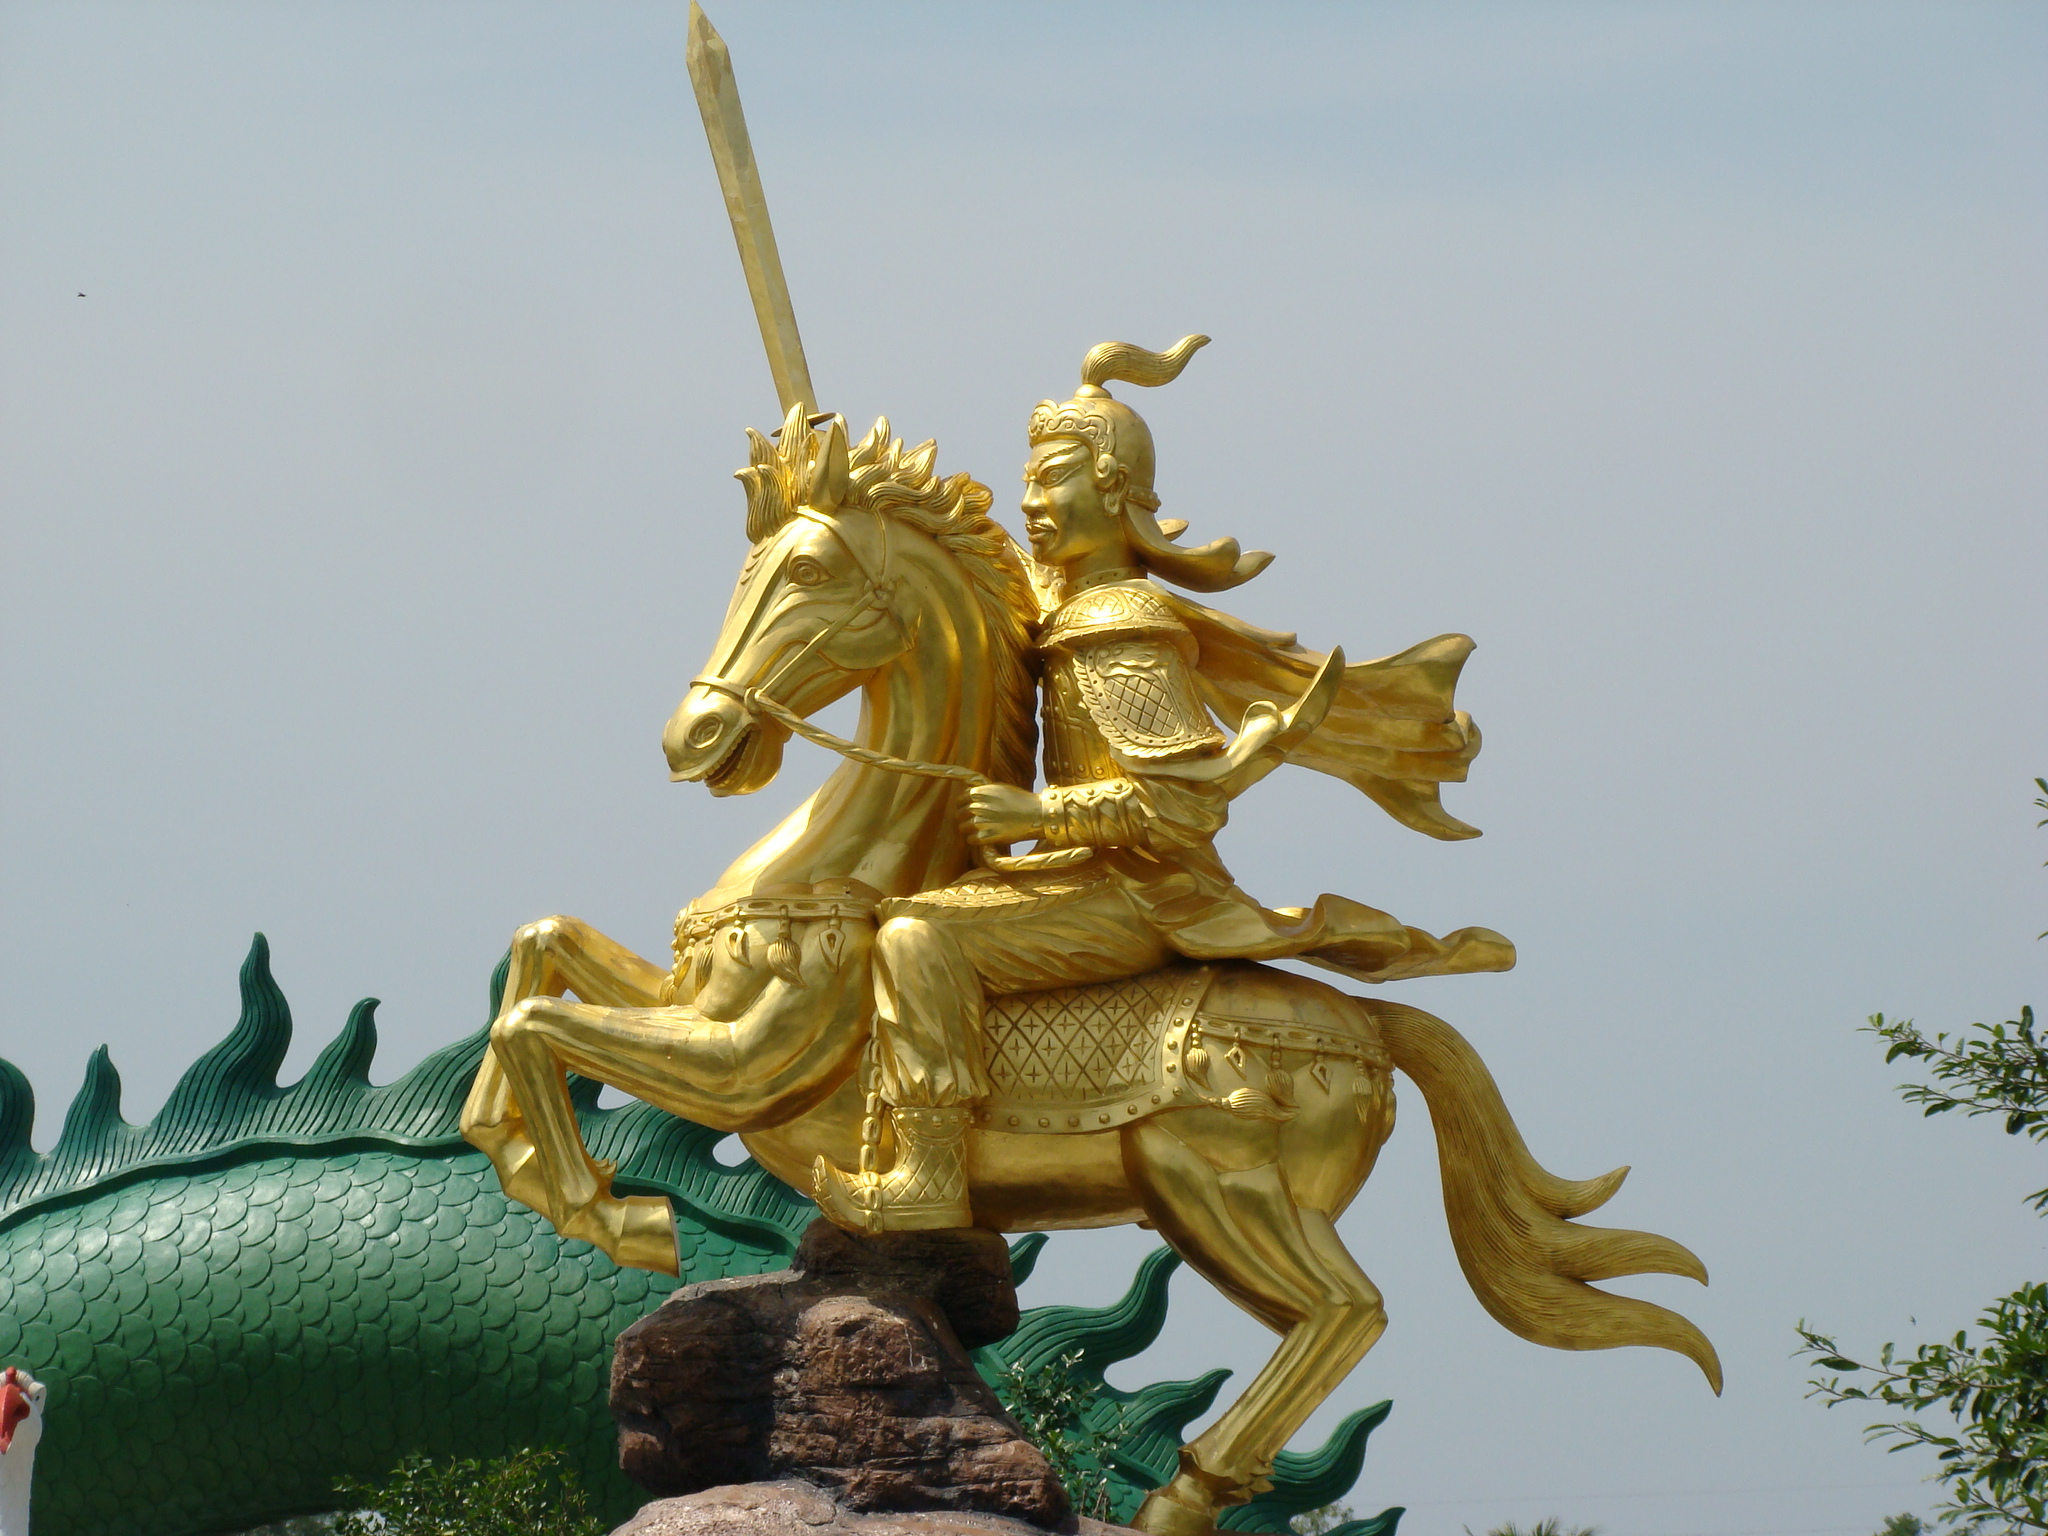 Do You Know Who General Tran Hung Dao Is He Defeated The Mongols 3 Times Mohammed Abbasi